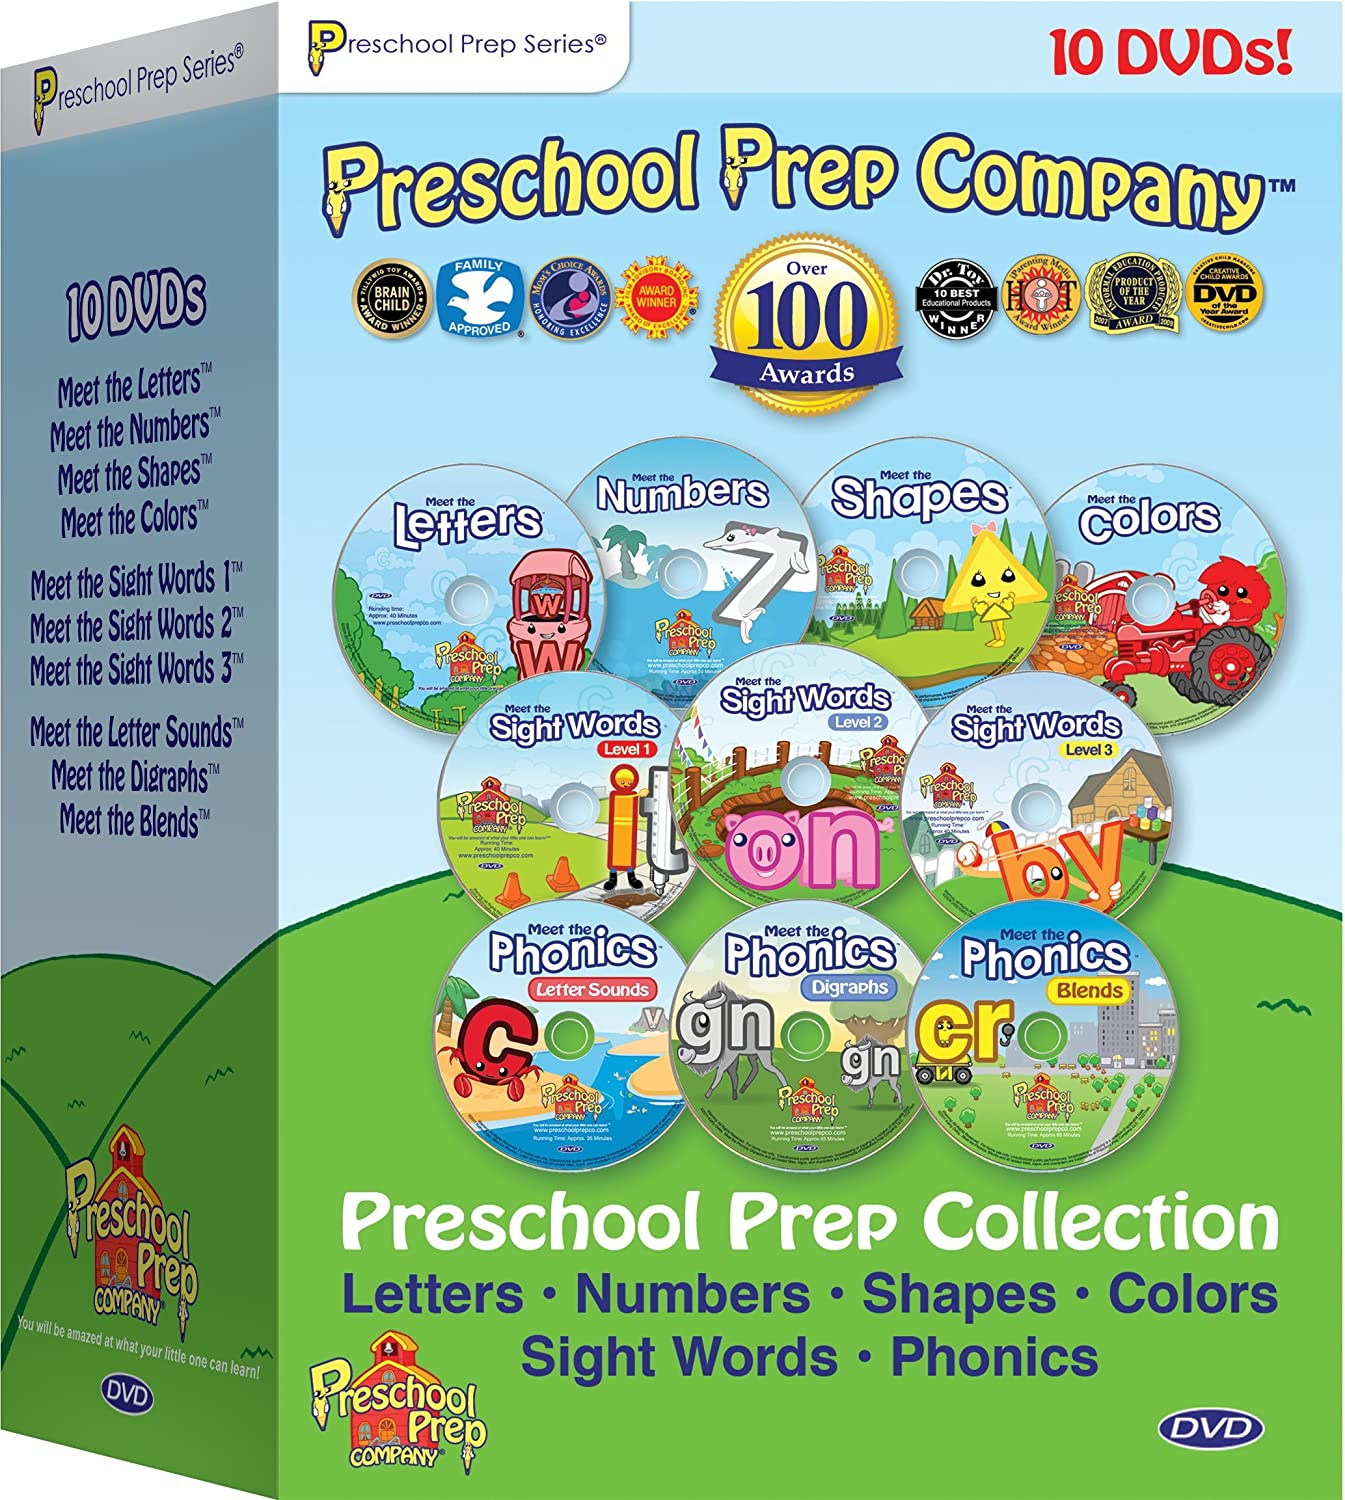 Amazon.com: Preschool Prep Series Collection - 10 DVD Boxed Set ...